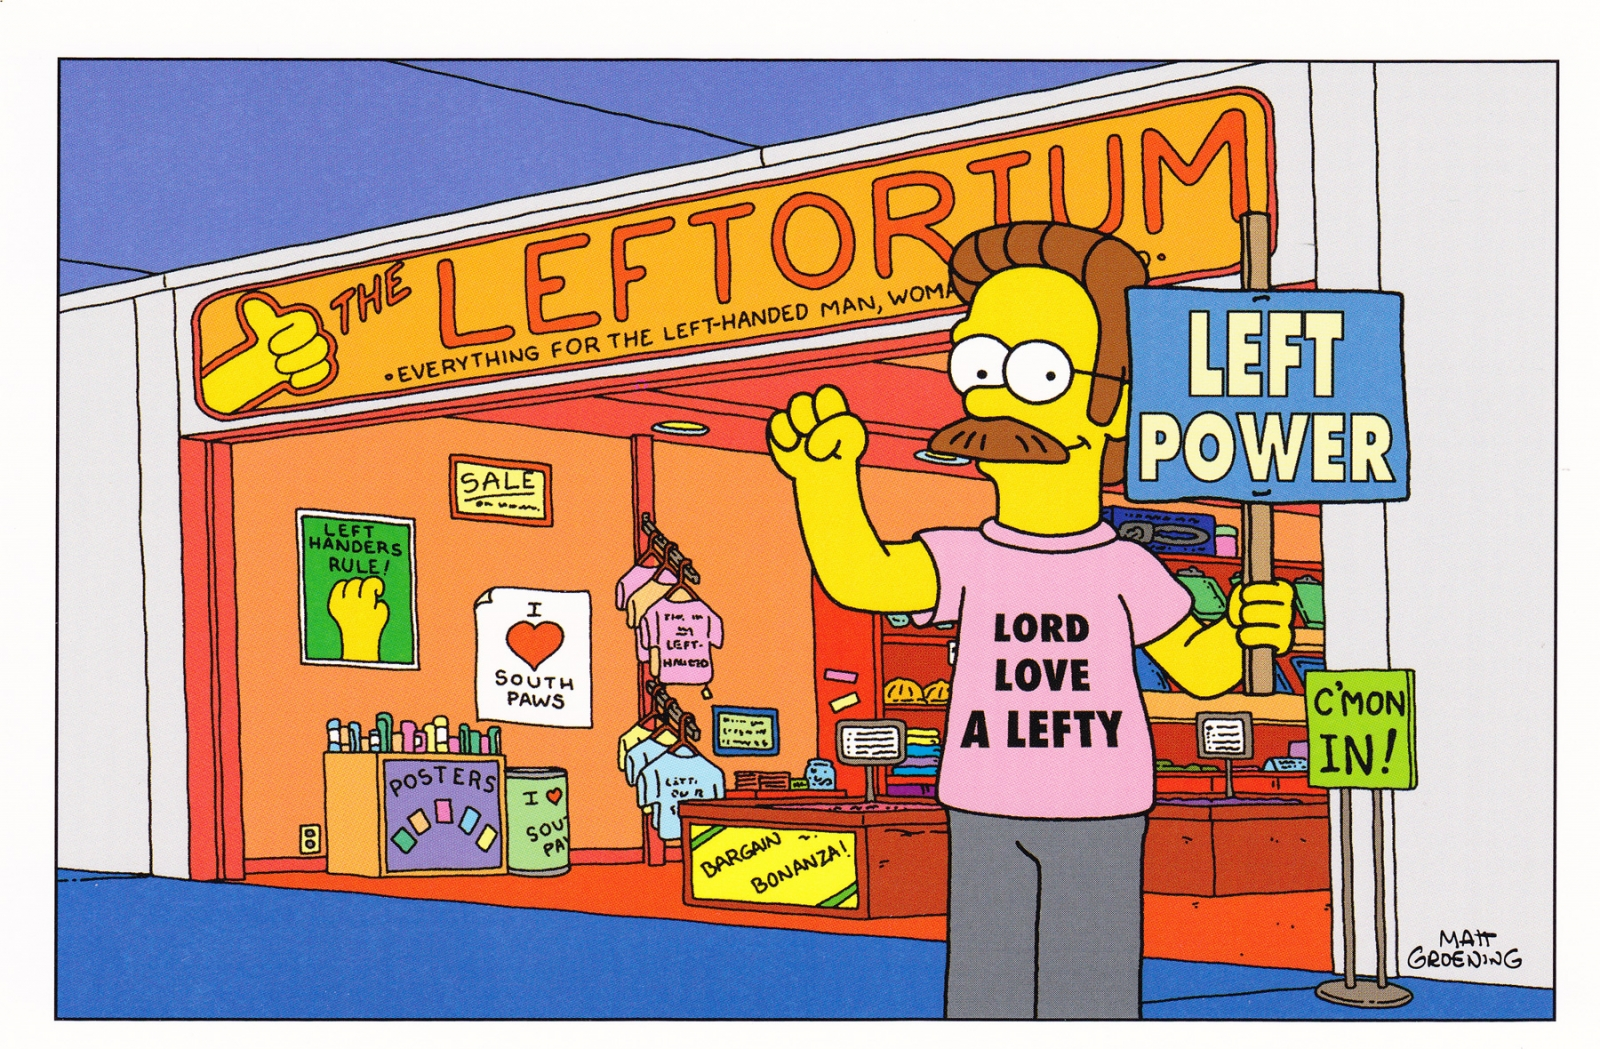 happy-lefthanders-day.jpg?w=600